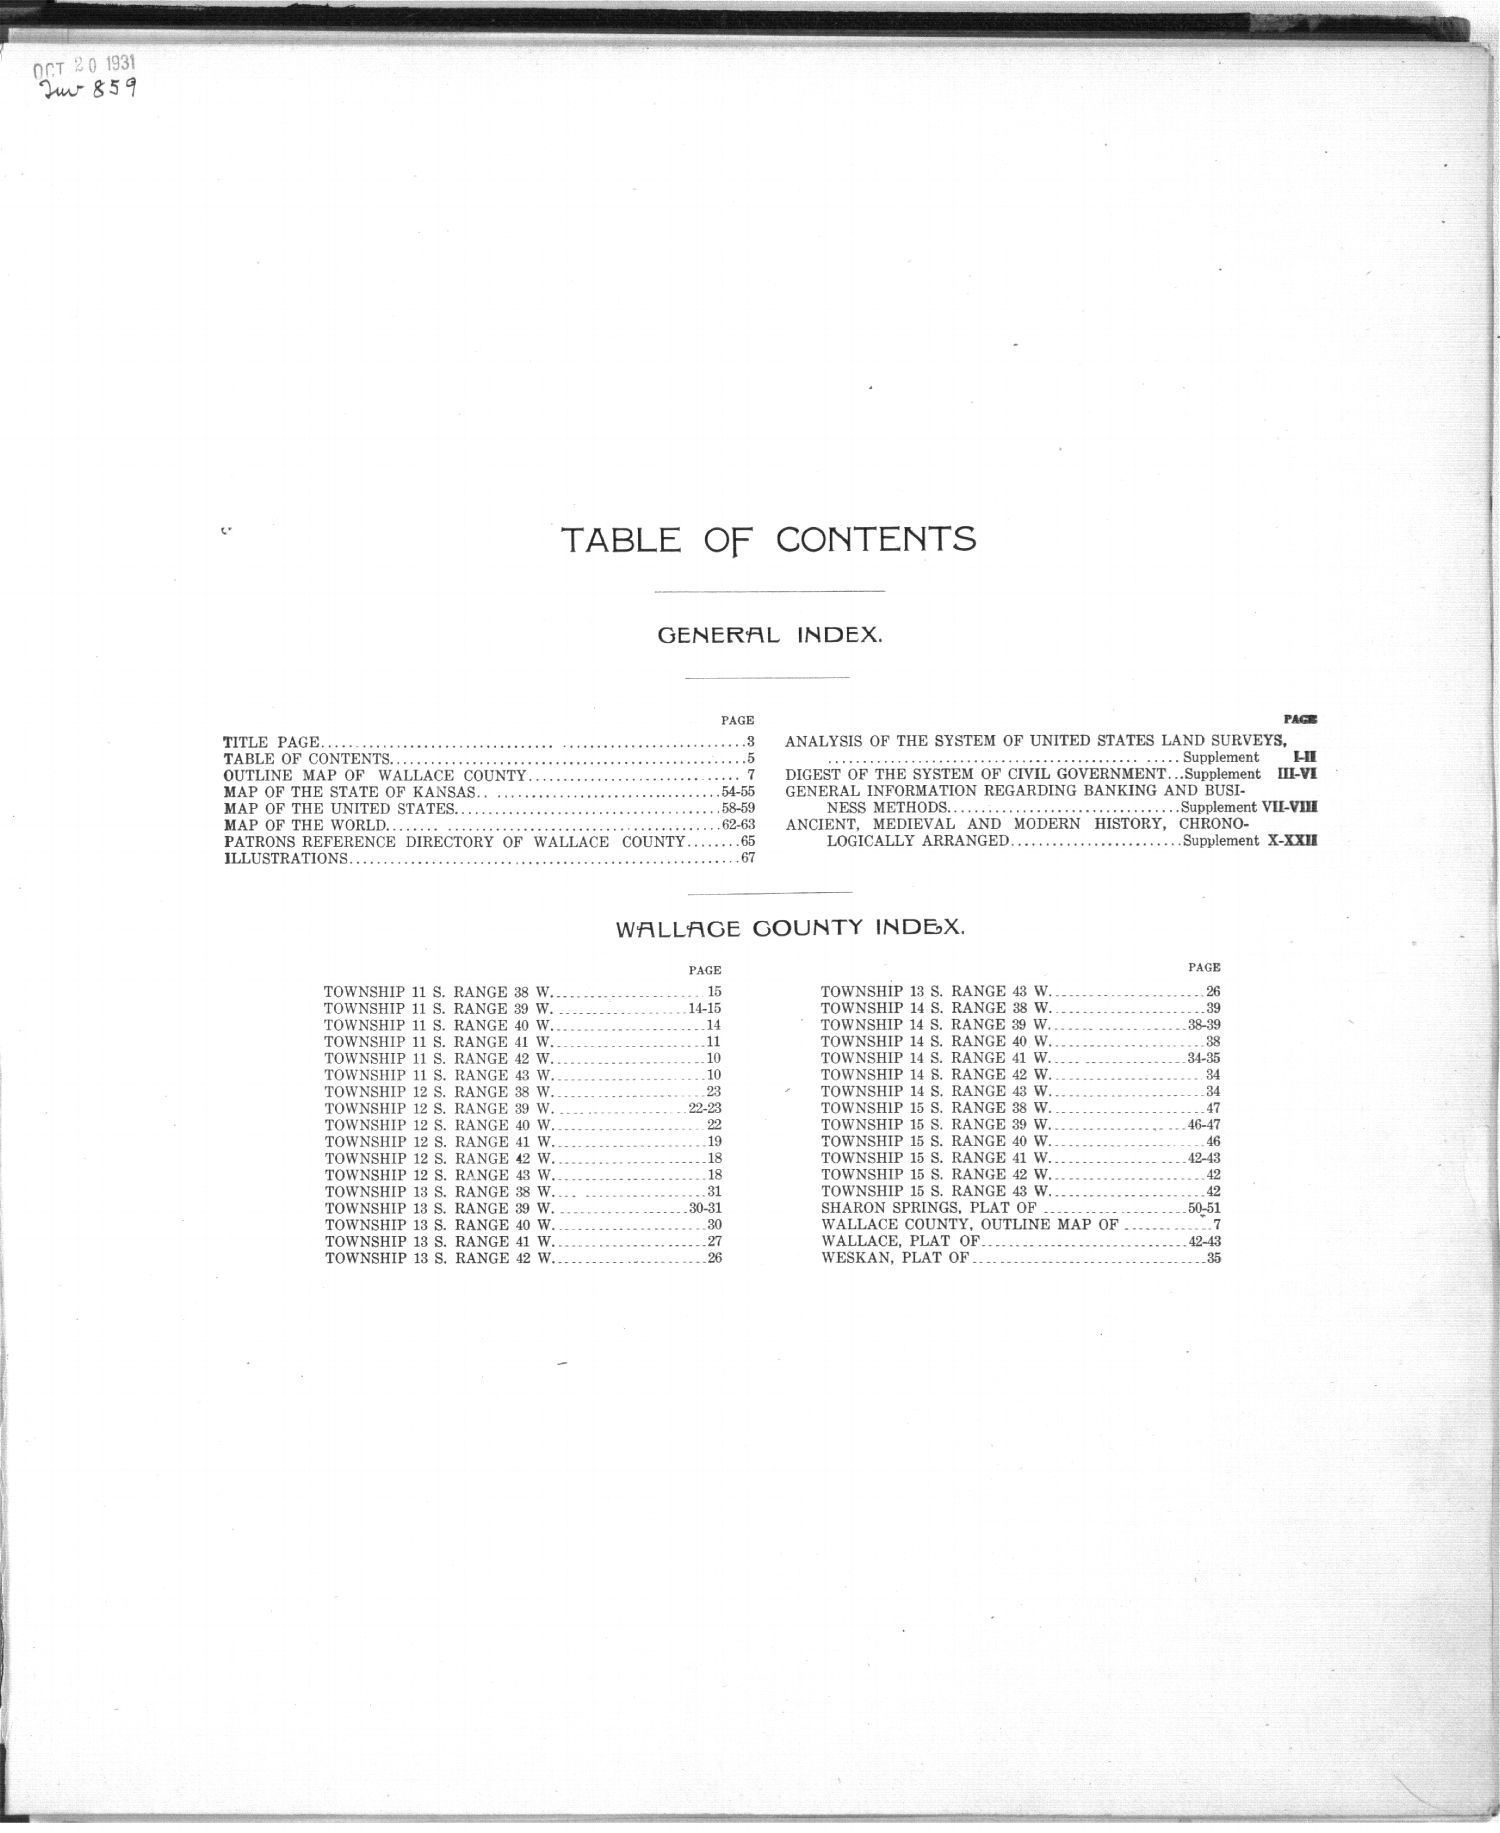 Standard atlas of Wallace County, Kansas - Table of Contents